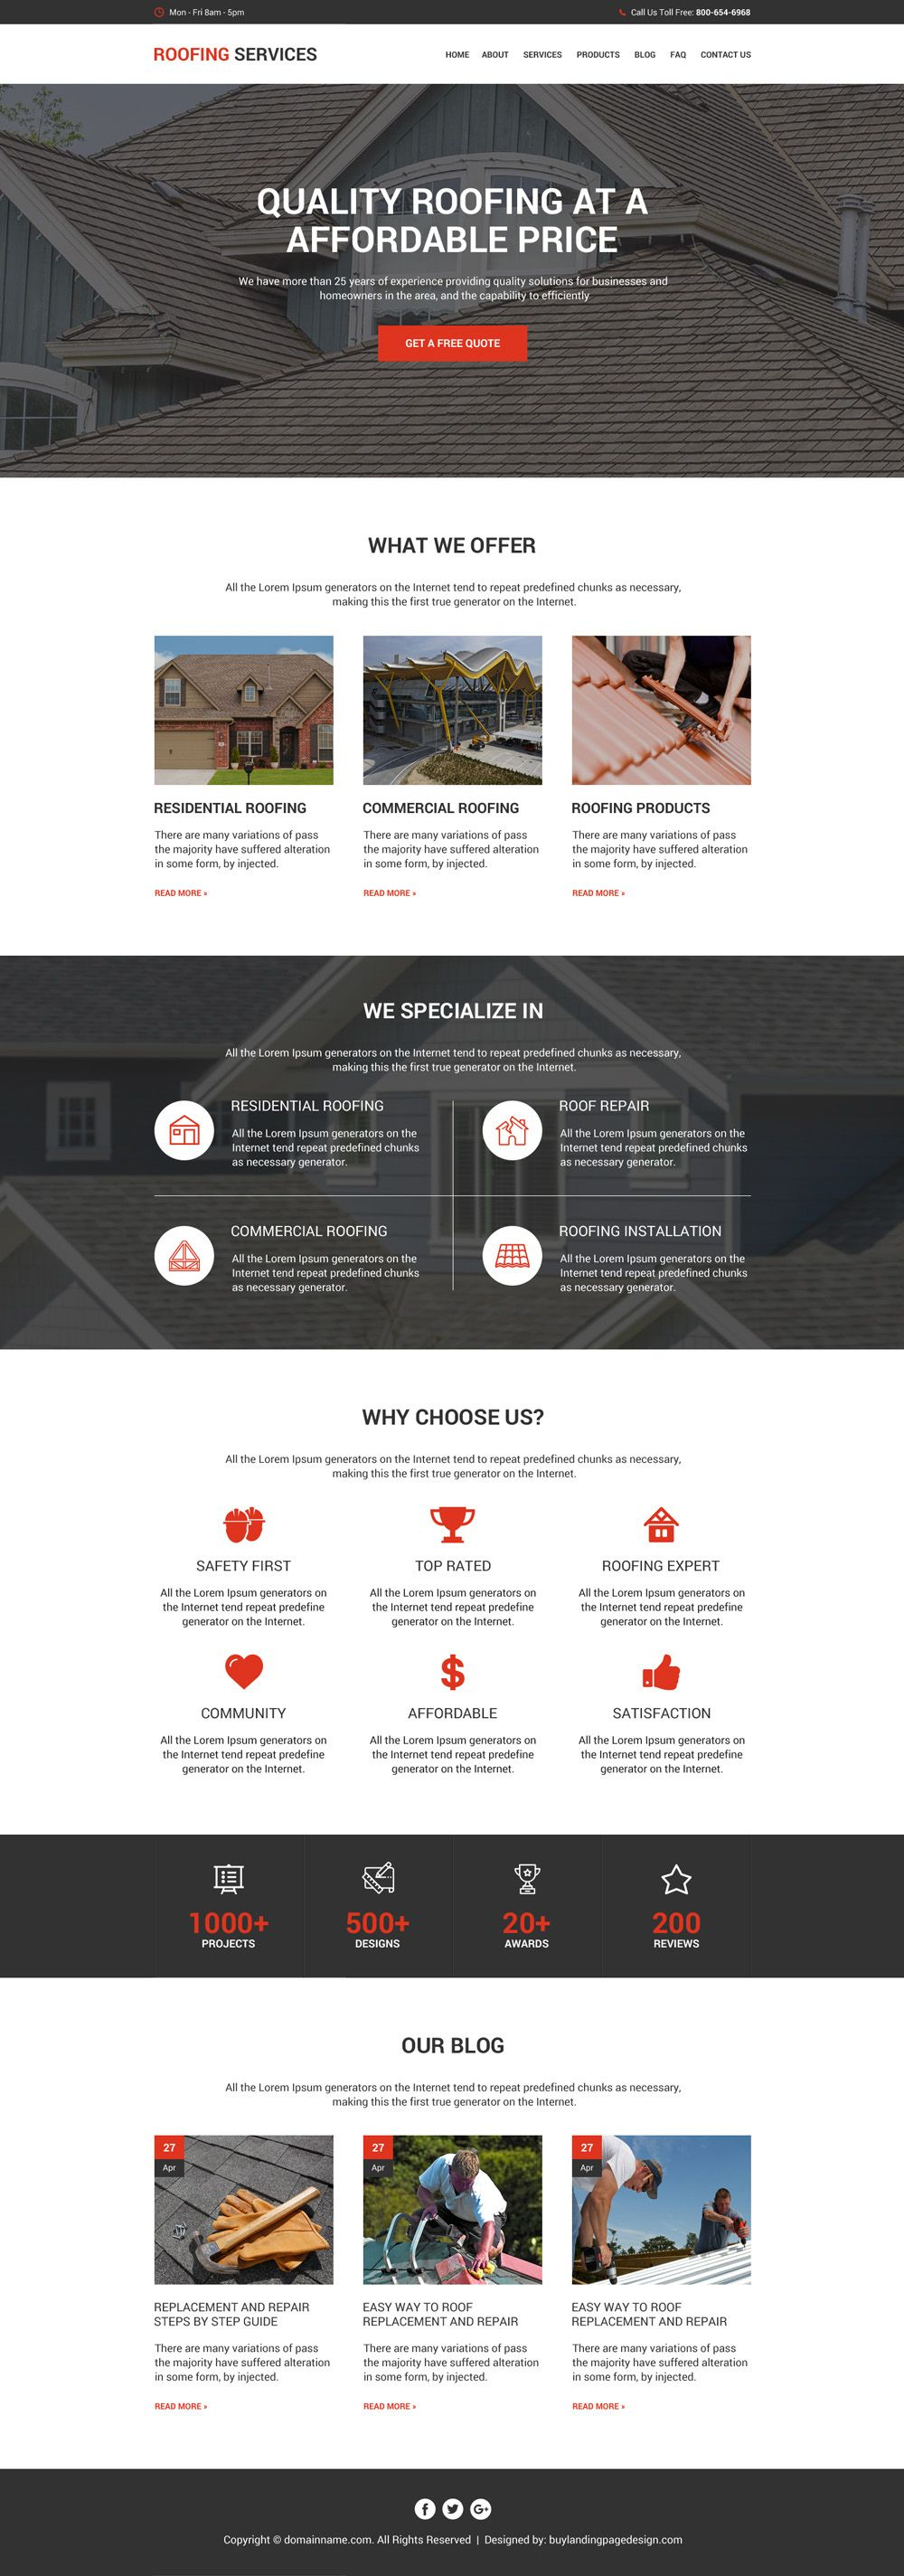 quality roofing service modern and clean website design html website templates design templates website